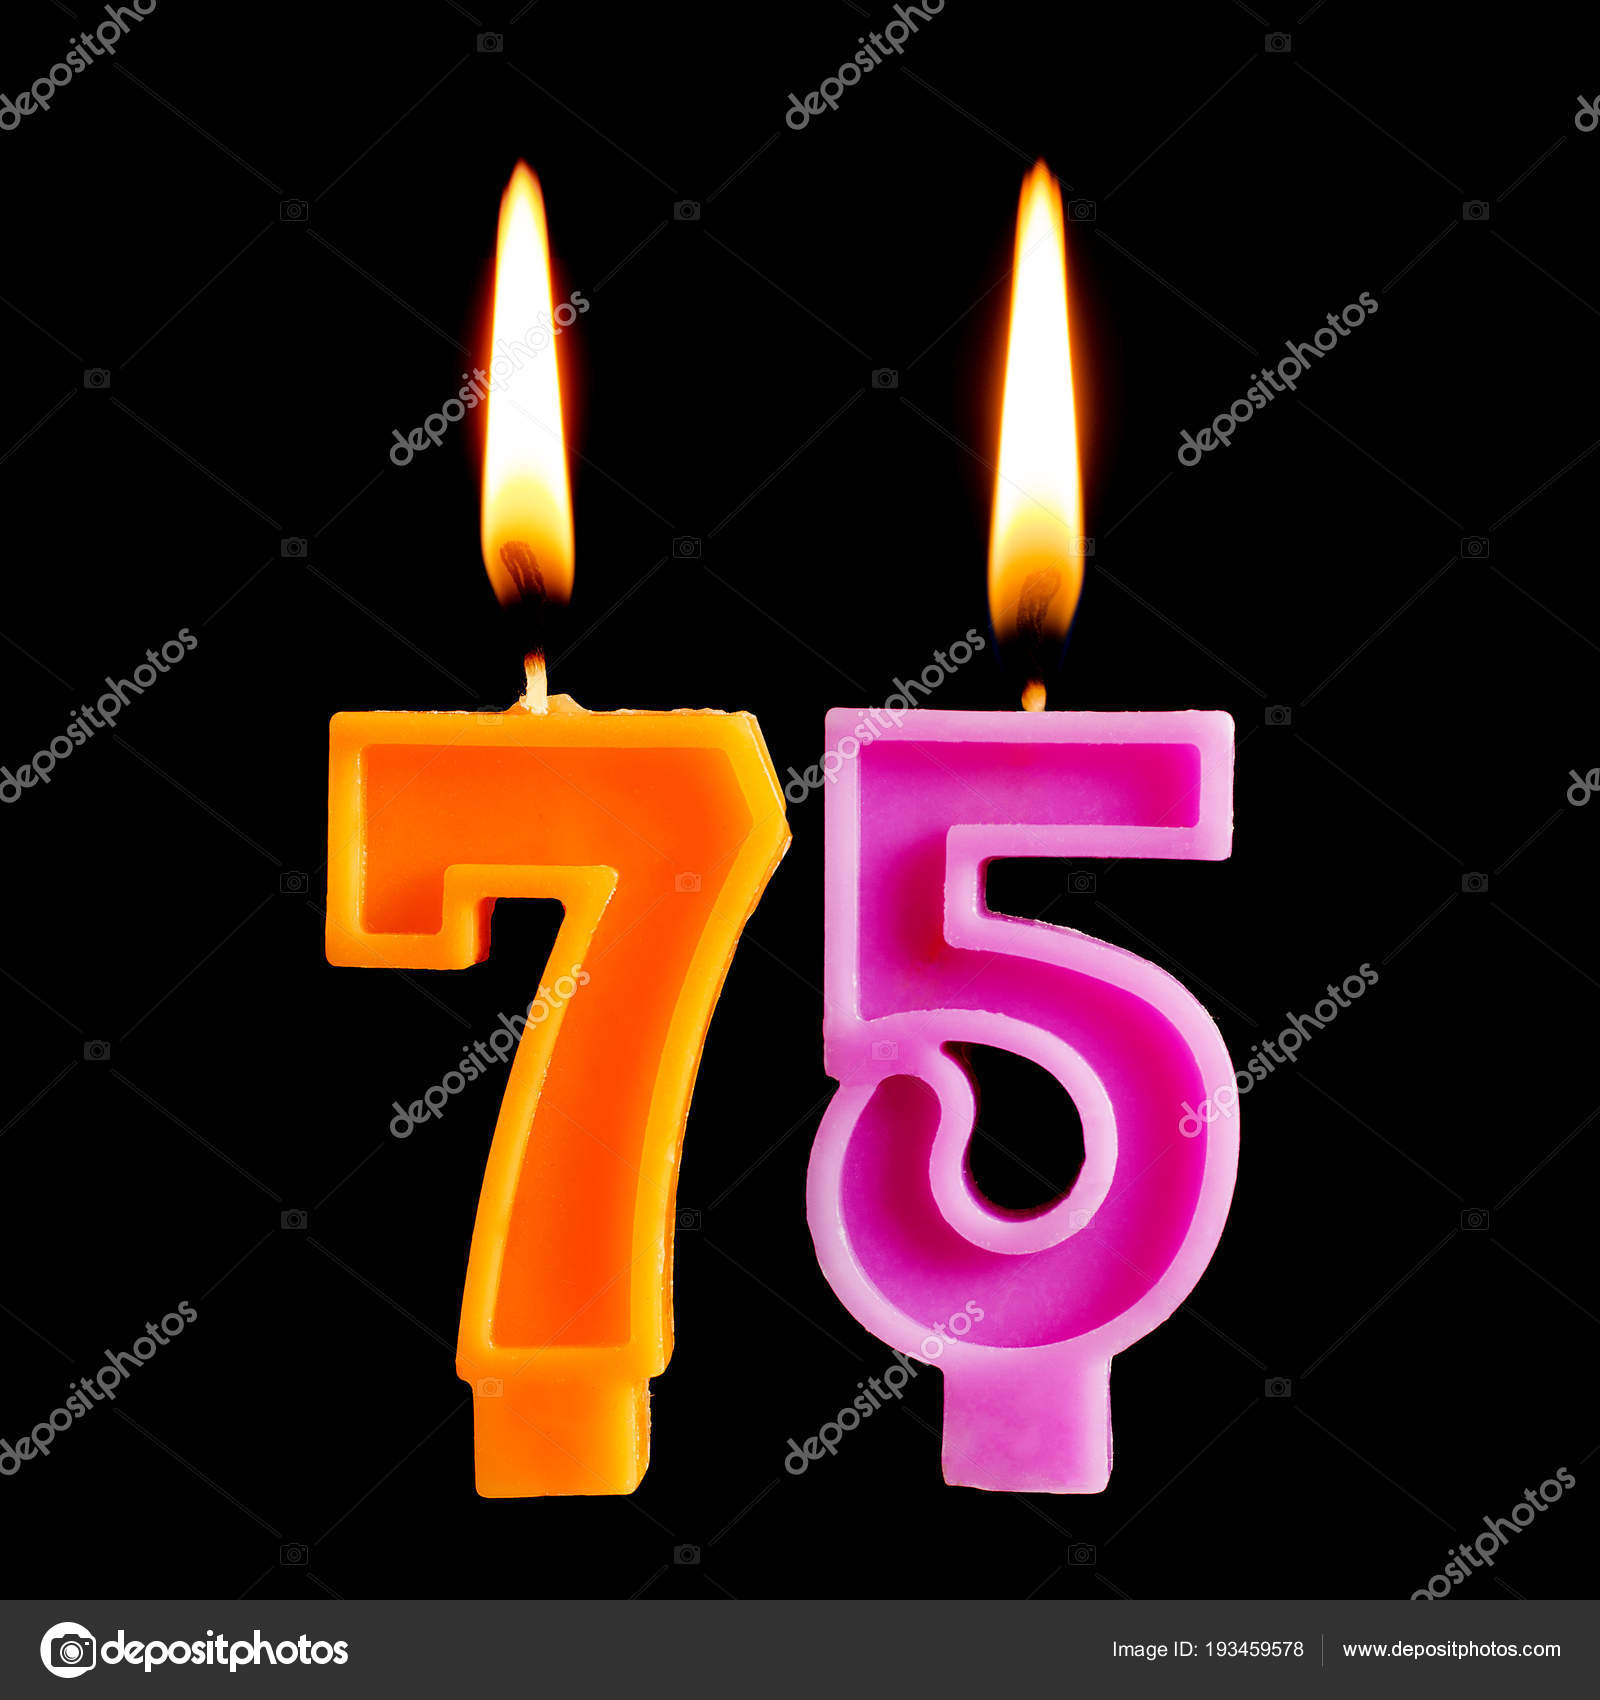 Burning Birthday Candles In The Form Of 75 Seventy Five Figures For Cake Isolated On Black Background Concept Celebrating A Anniversary